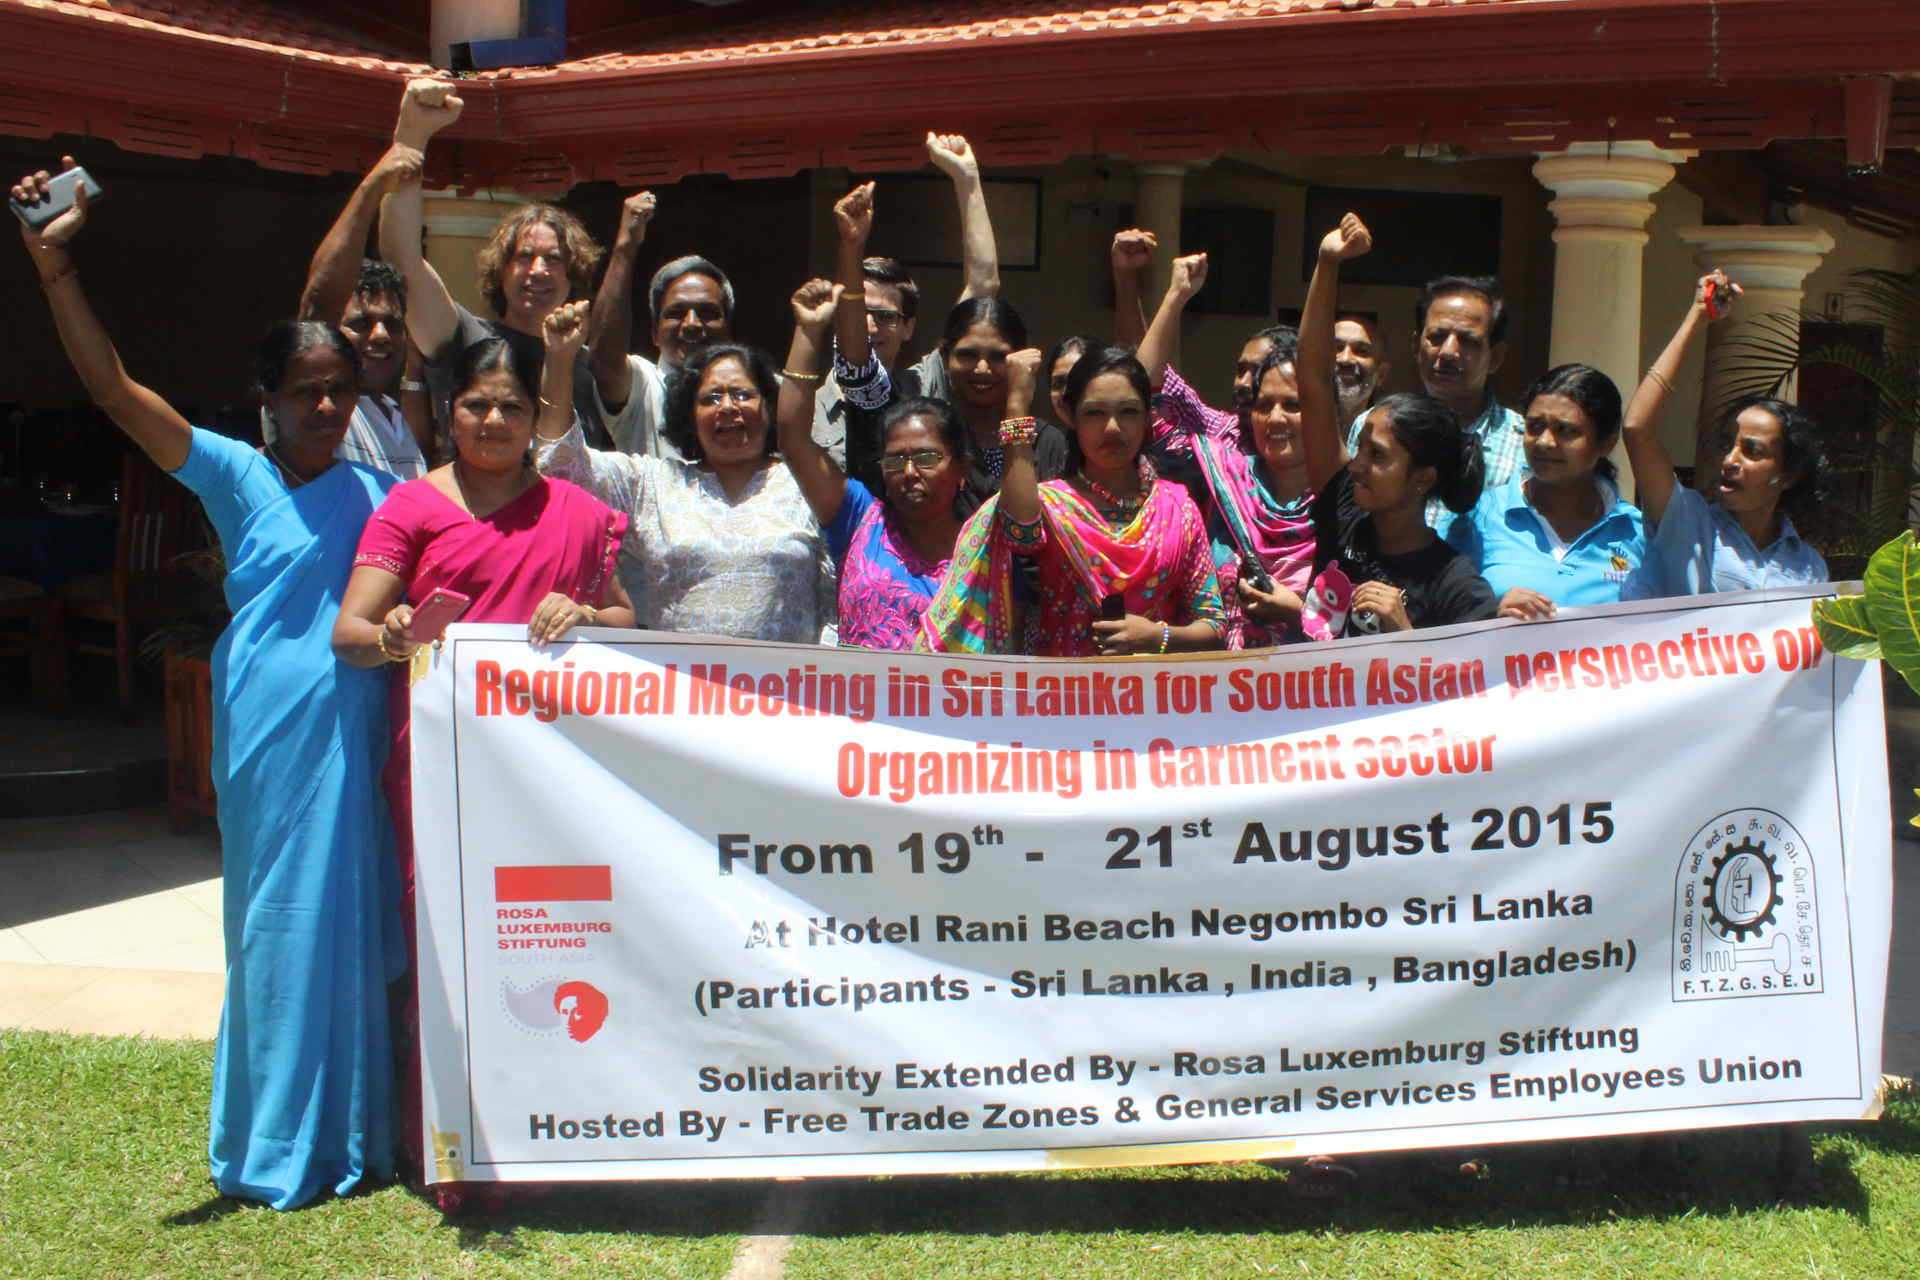 Group picture: Regional Meeting for South Asian perspectives on organizing in the garment sector